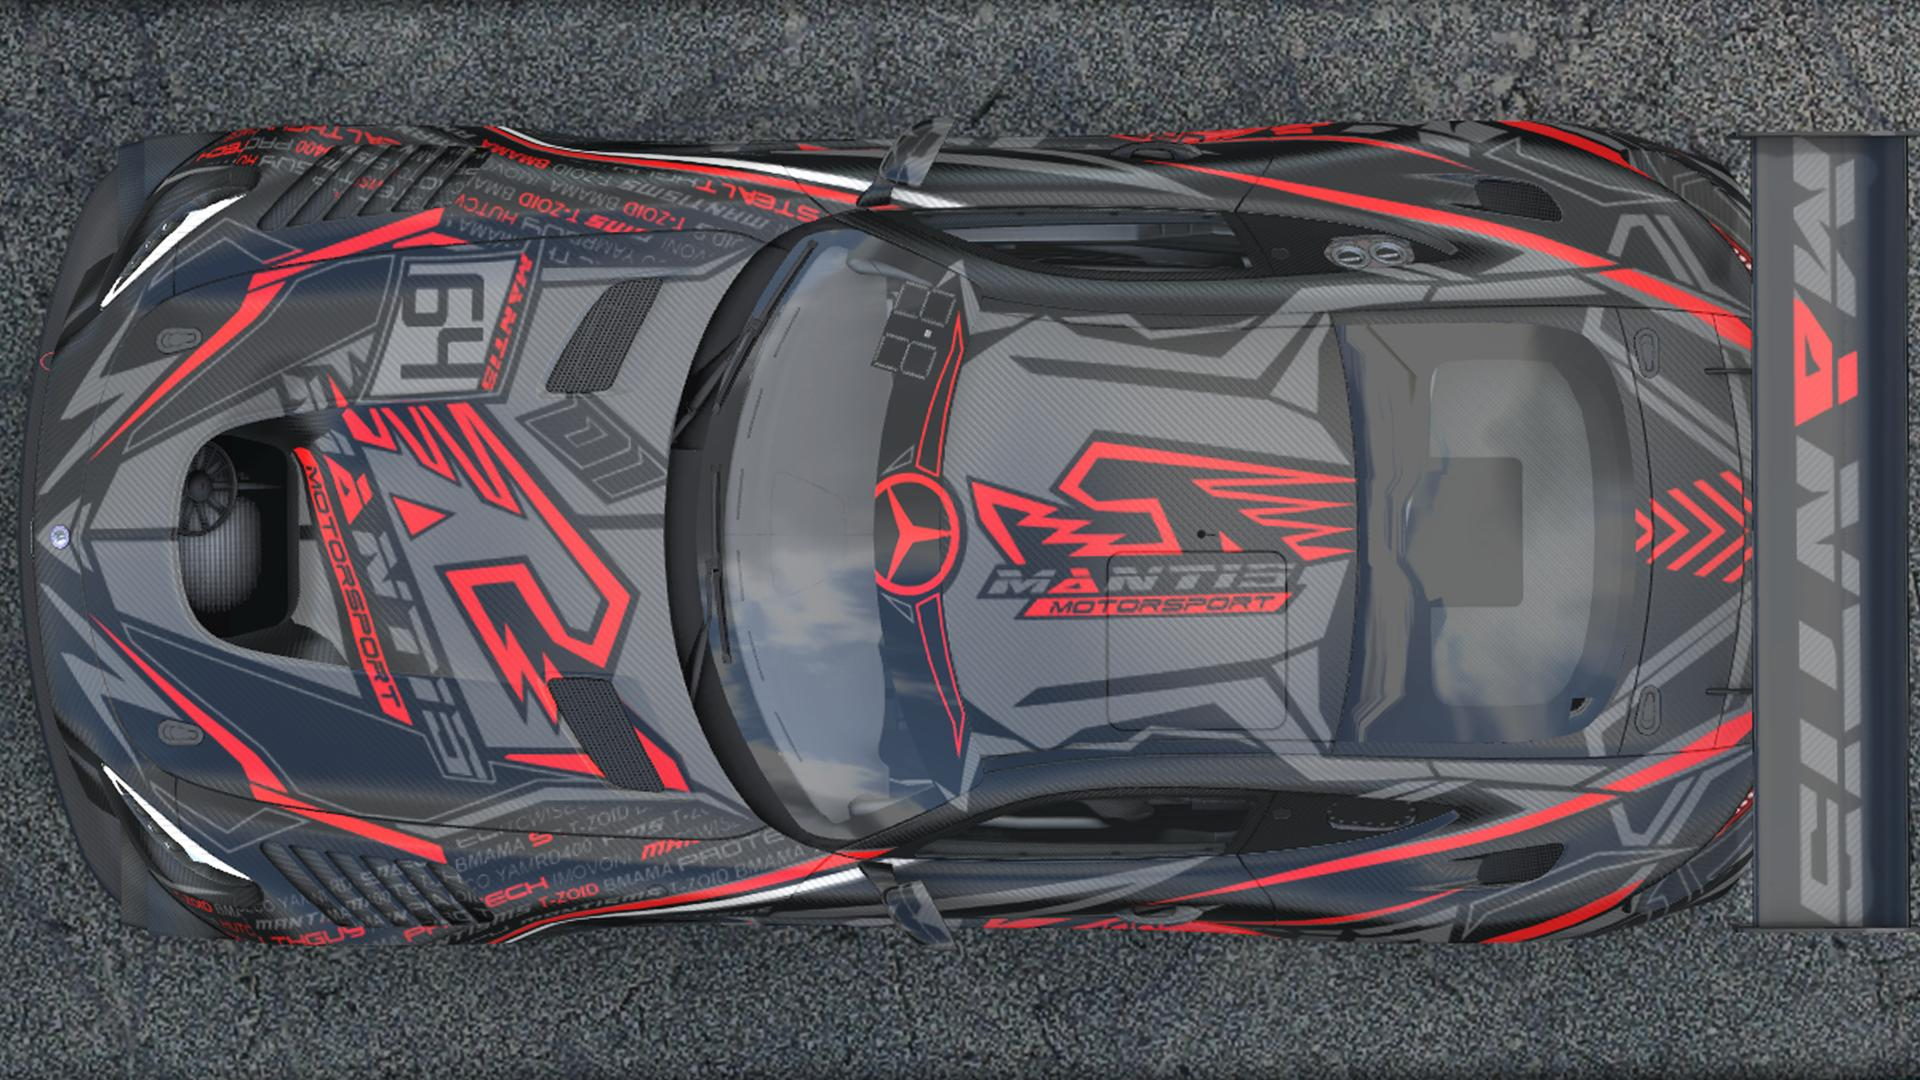 Preview of Mercedes AMG GT3 ONYX / RED CARBON by Kirk S.